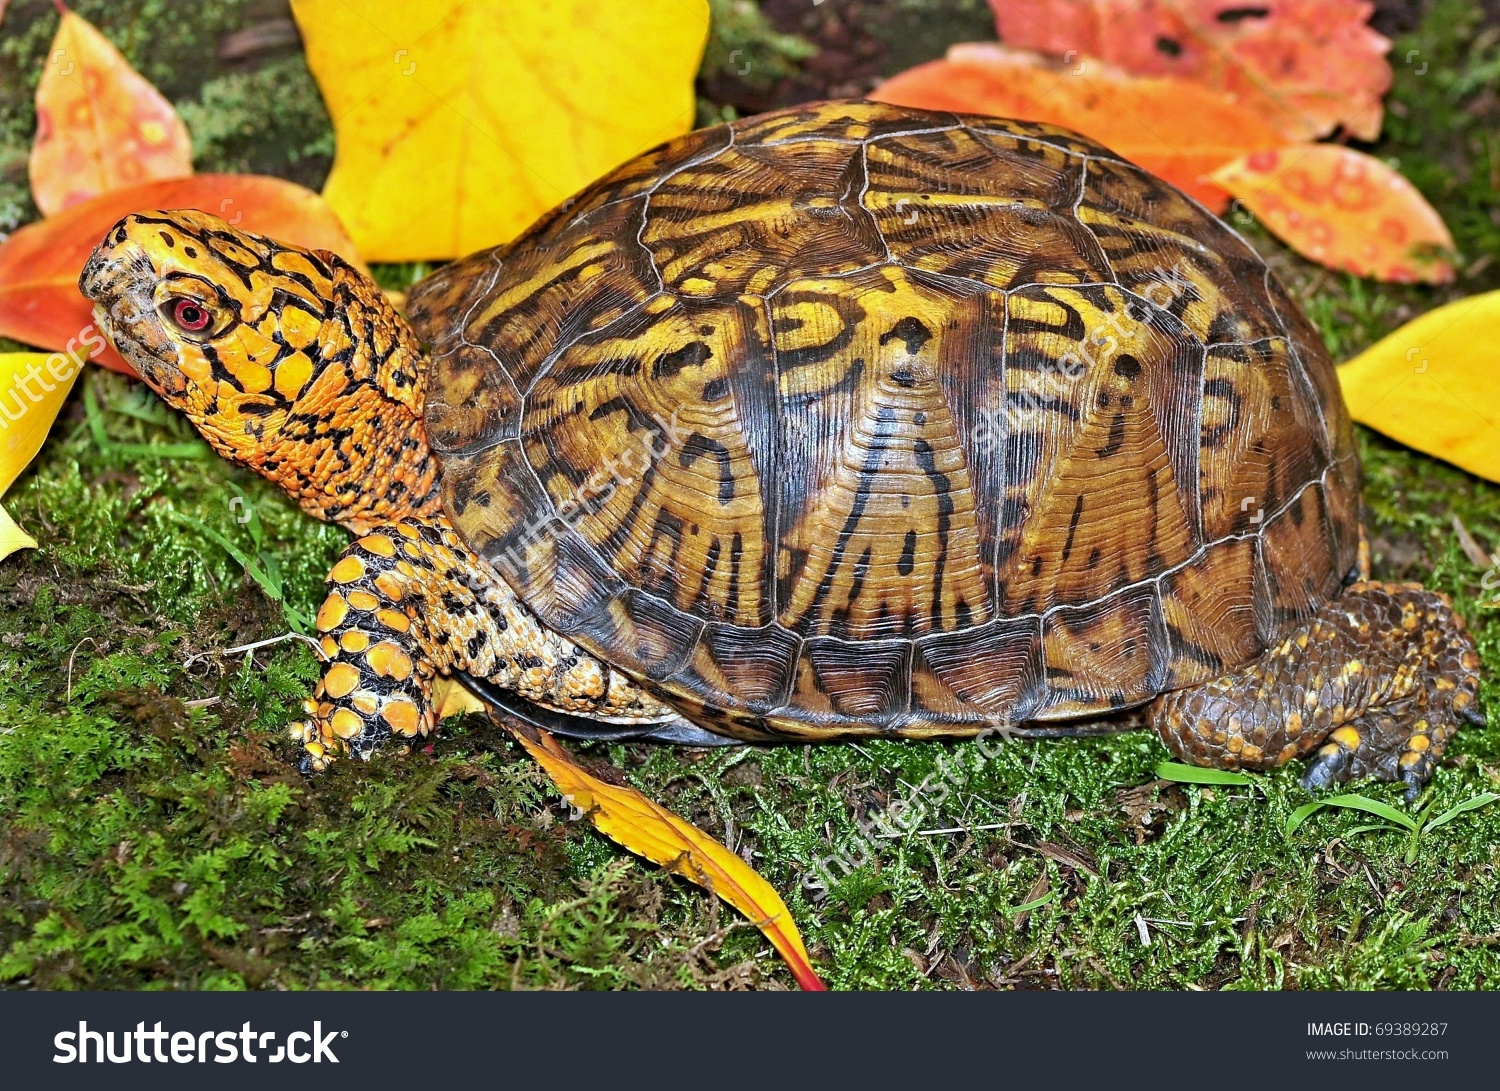 Male Eastern Box Turtle Terrapene Carolina Stock Photo 69389287.